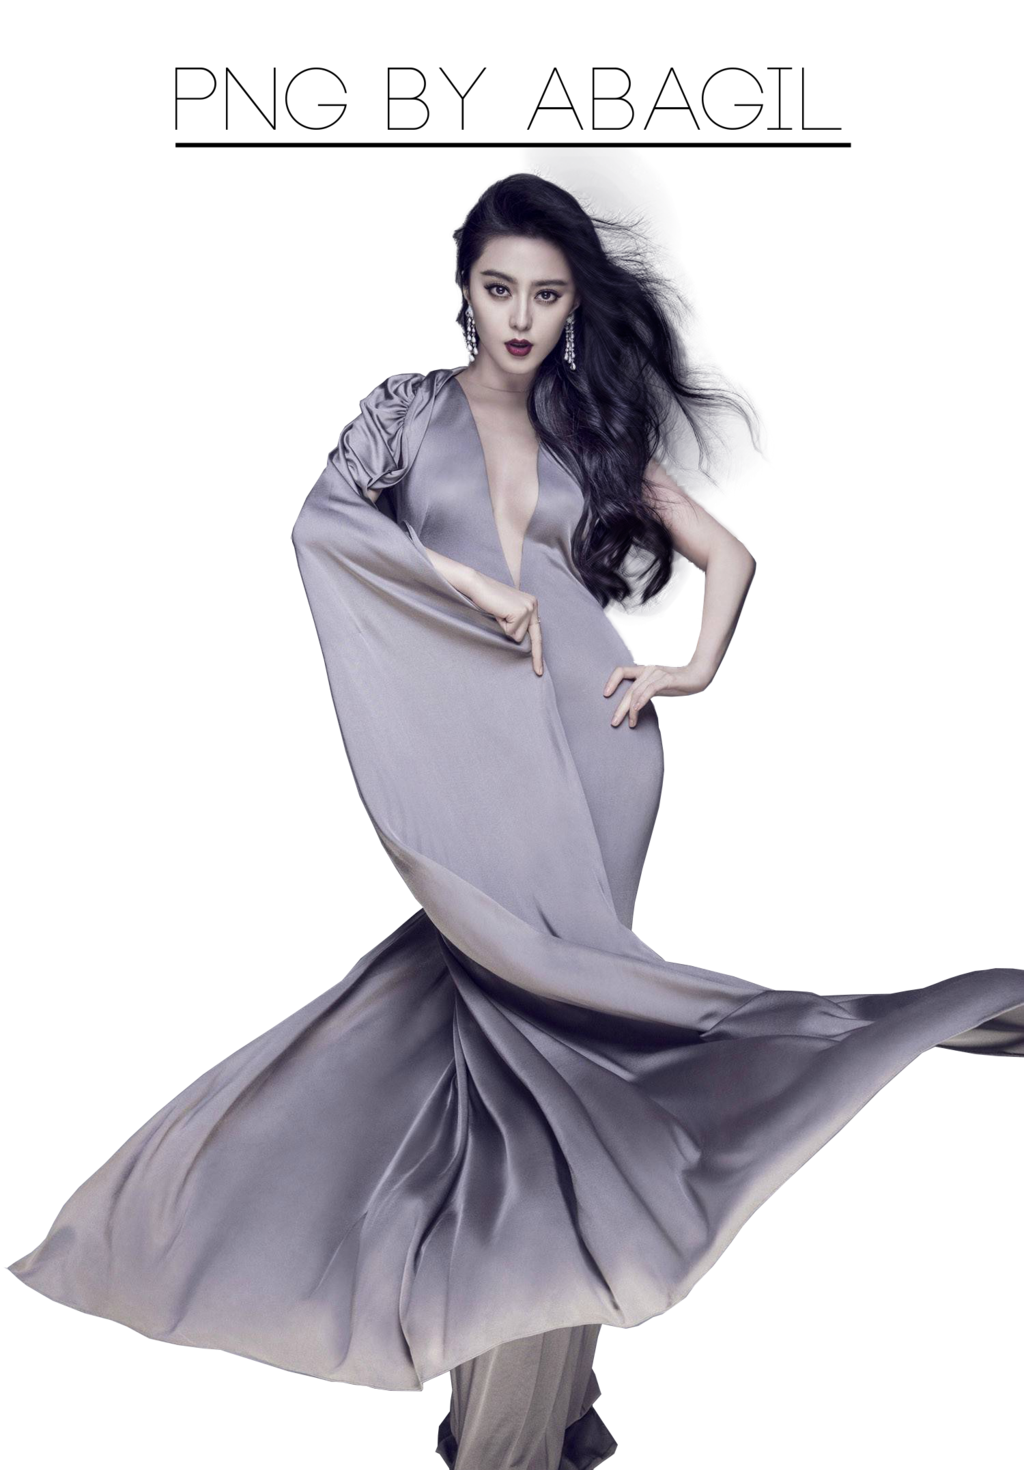 Fan Bingbing Transparent Background PNG Image